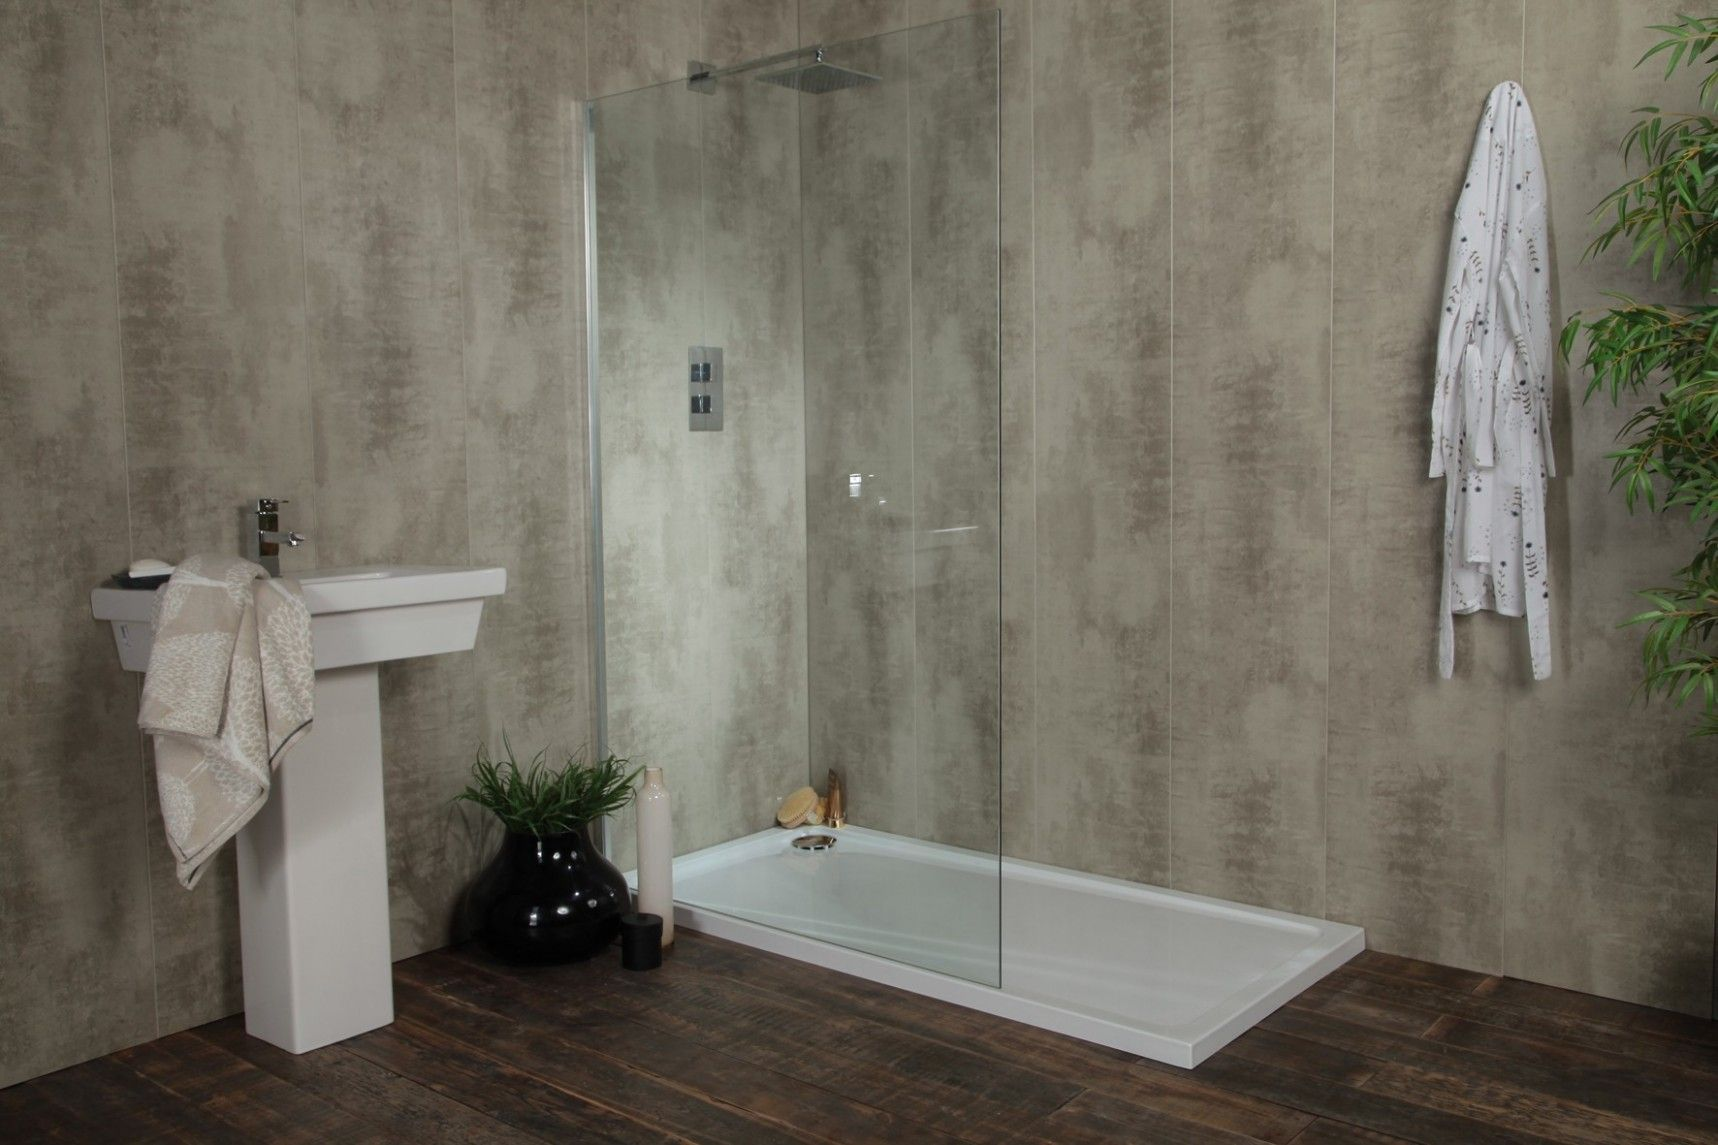 Swish Marbrex White Wood Bathroom Wall Cladding Bathroom Wall Cladding Wood Wall Bathroom Wall Cladding